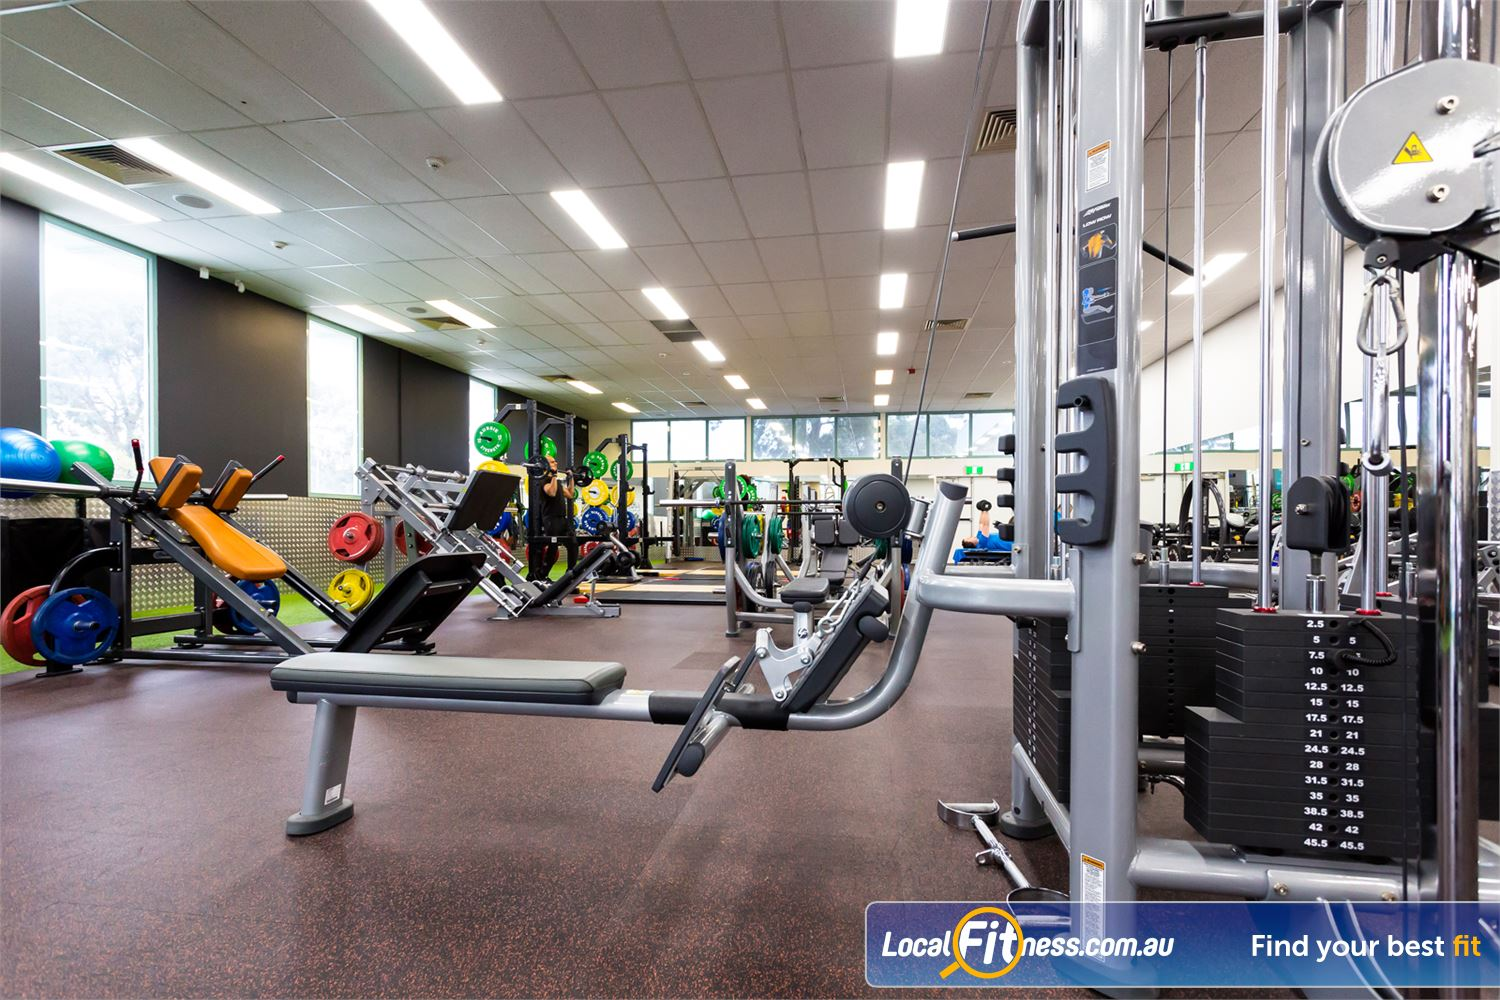 Reservoir Leisure Centre Reservoir Our spacious Reservoir gym is fully equipped with all the latest training equipment.